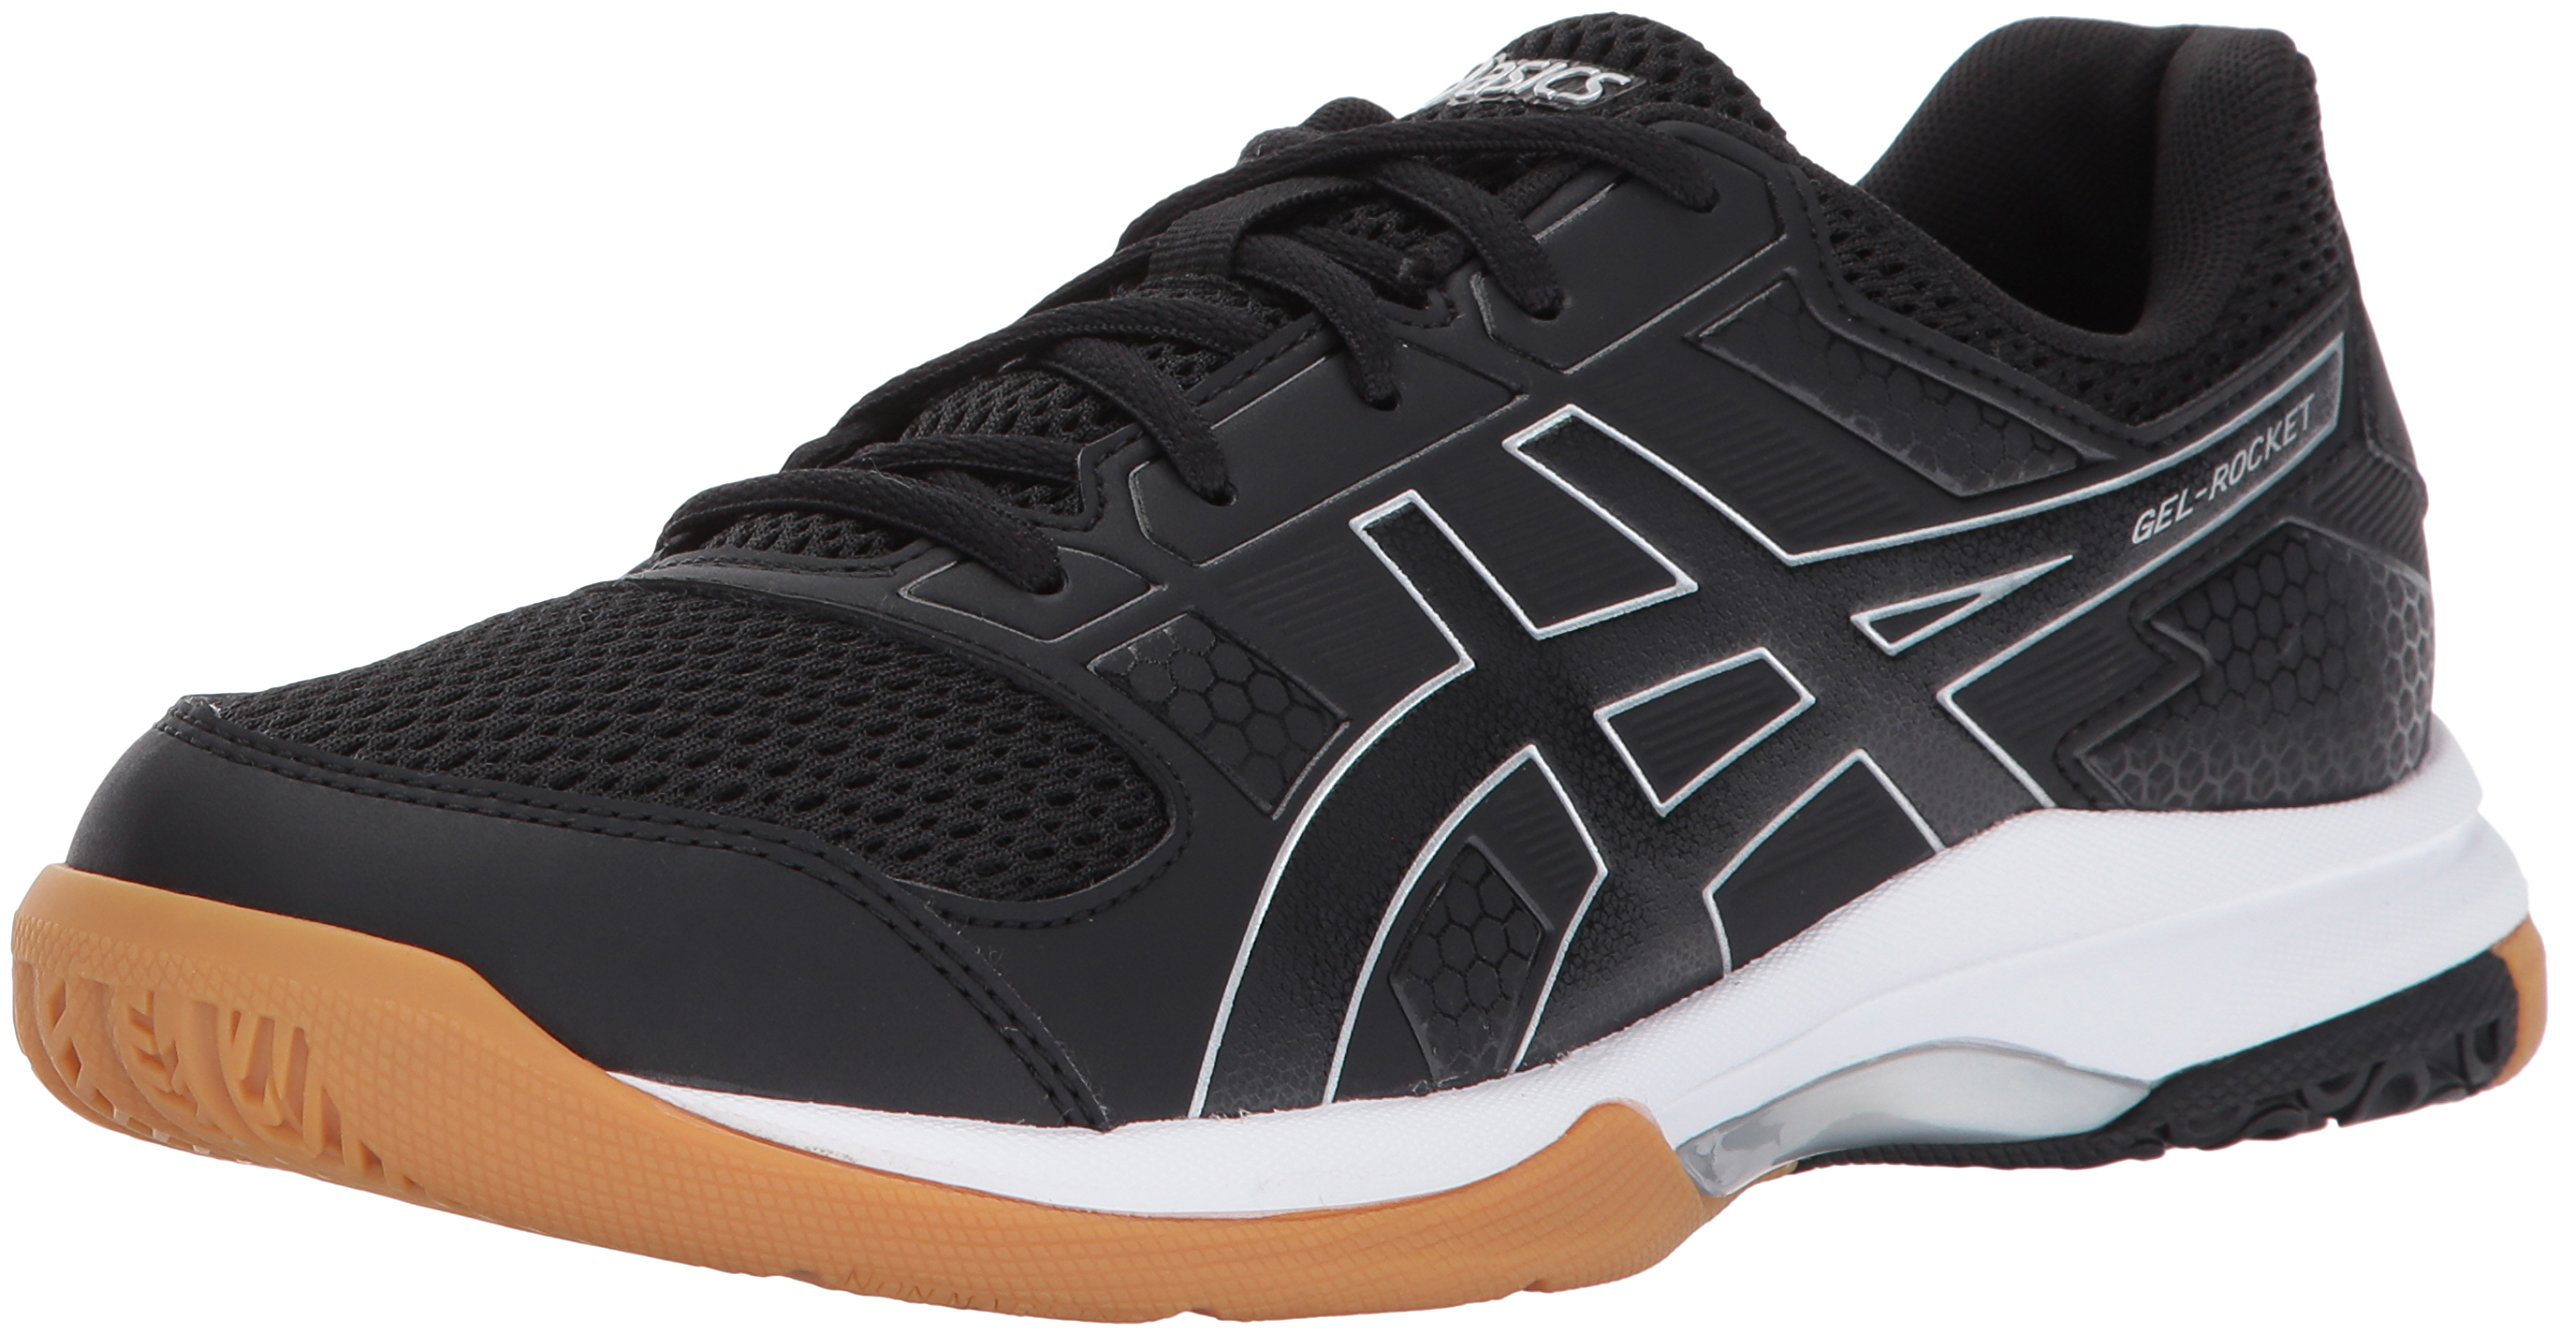 in stock 8cd0b fff3a ASICS Womens Gel-Rocket 8 Volleyball Shoe